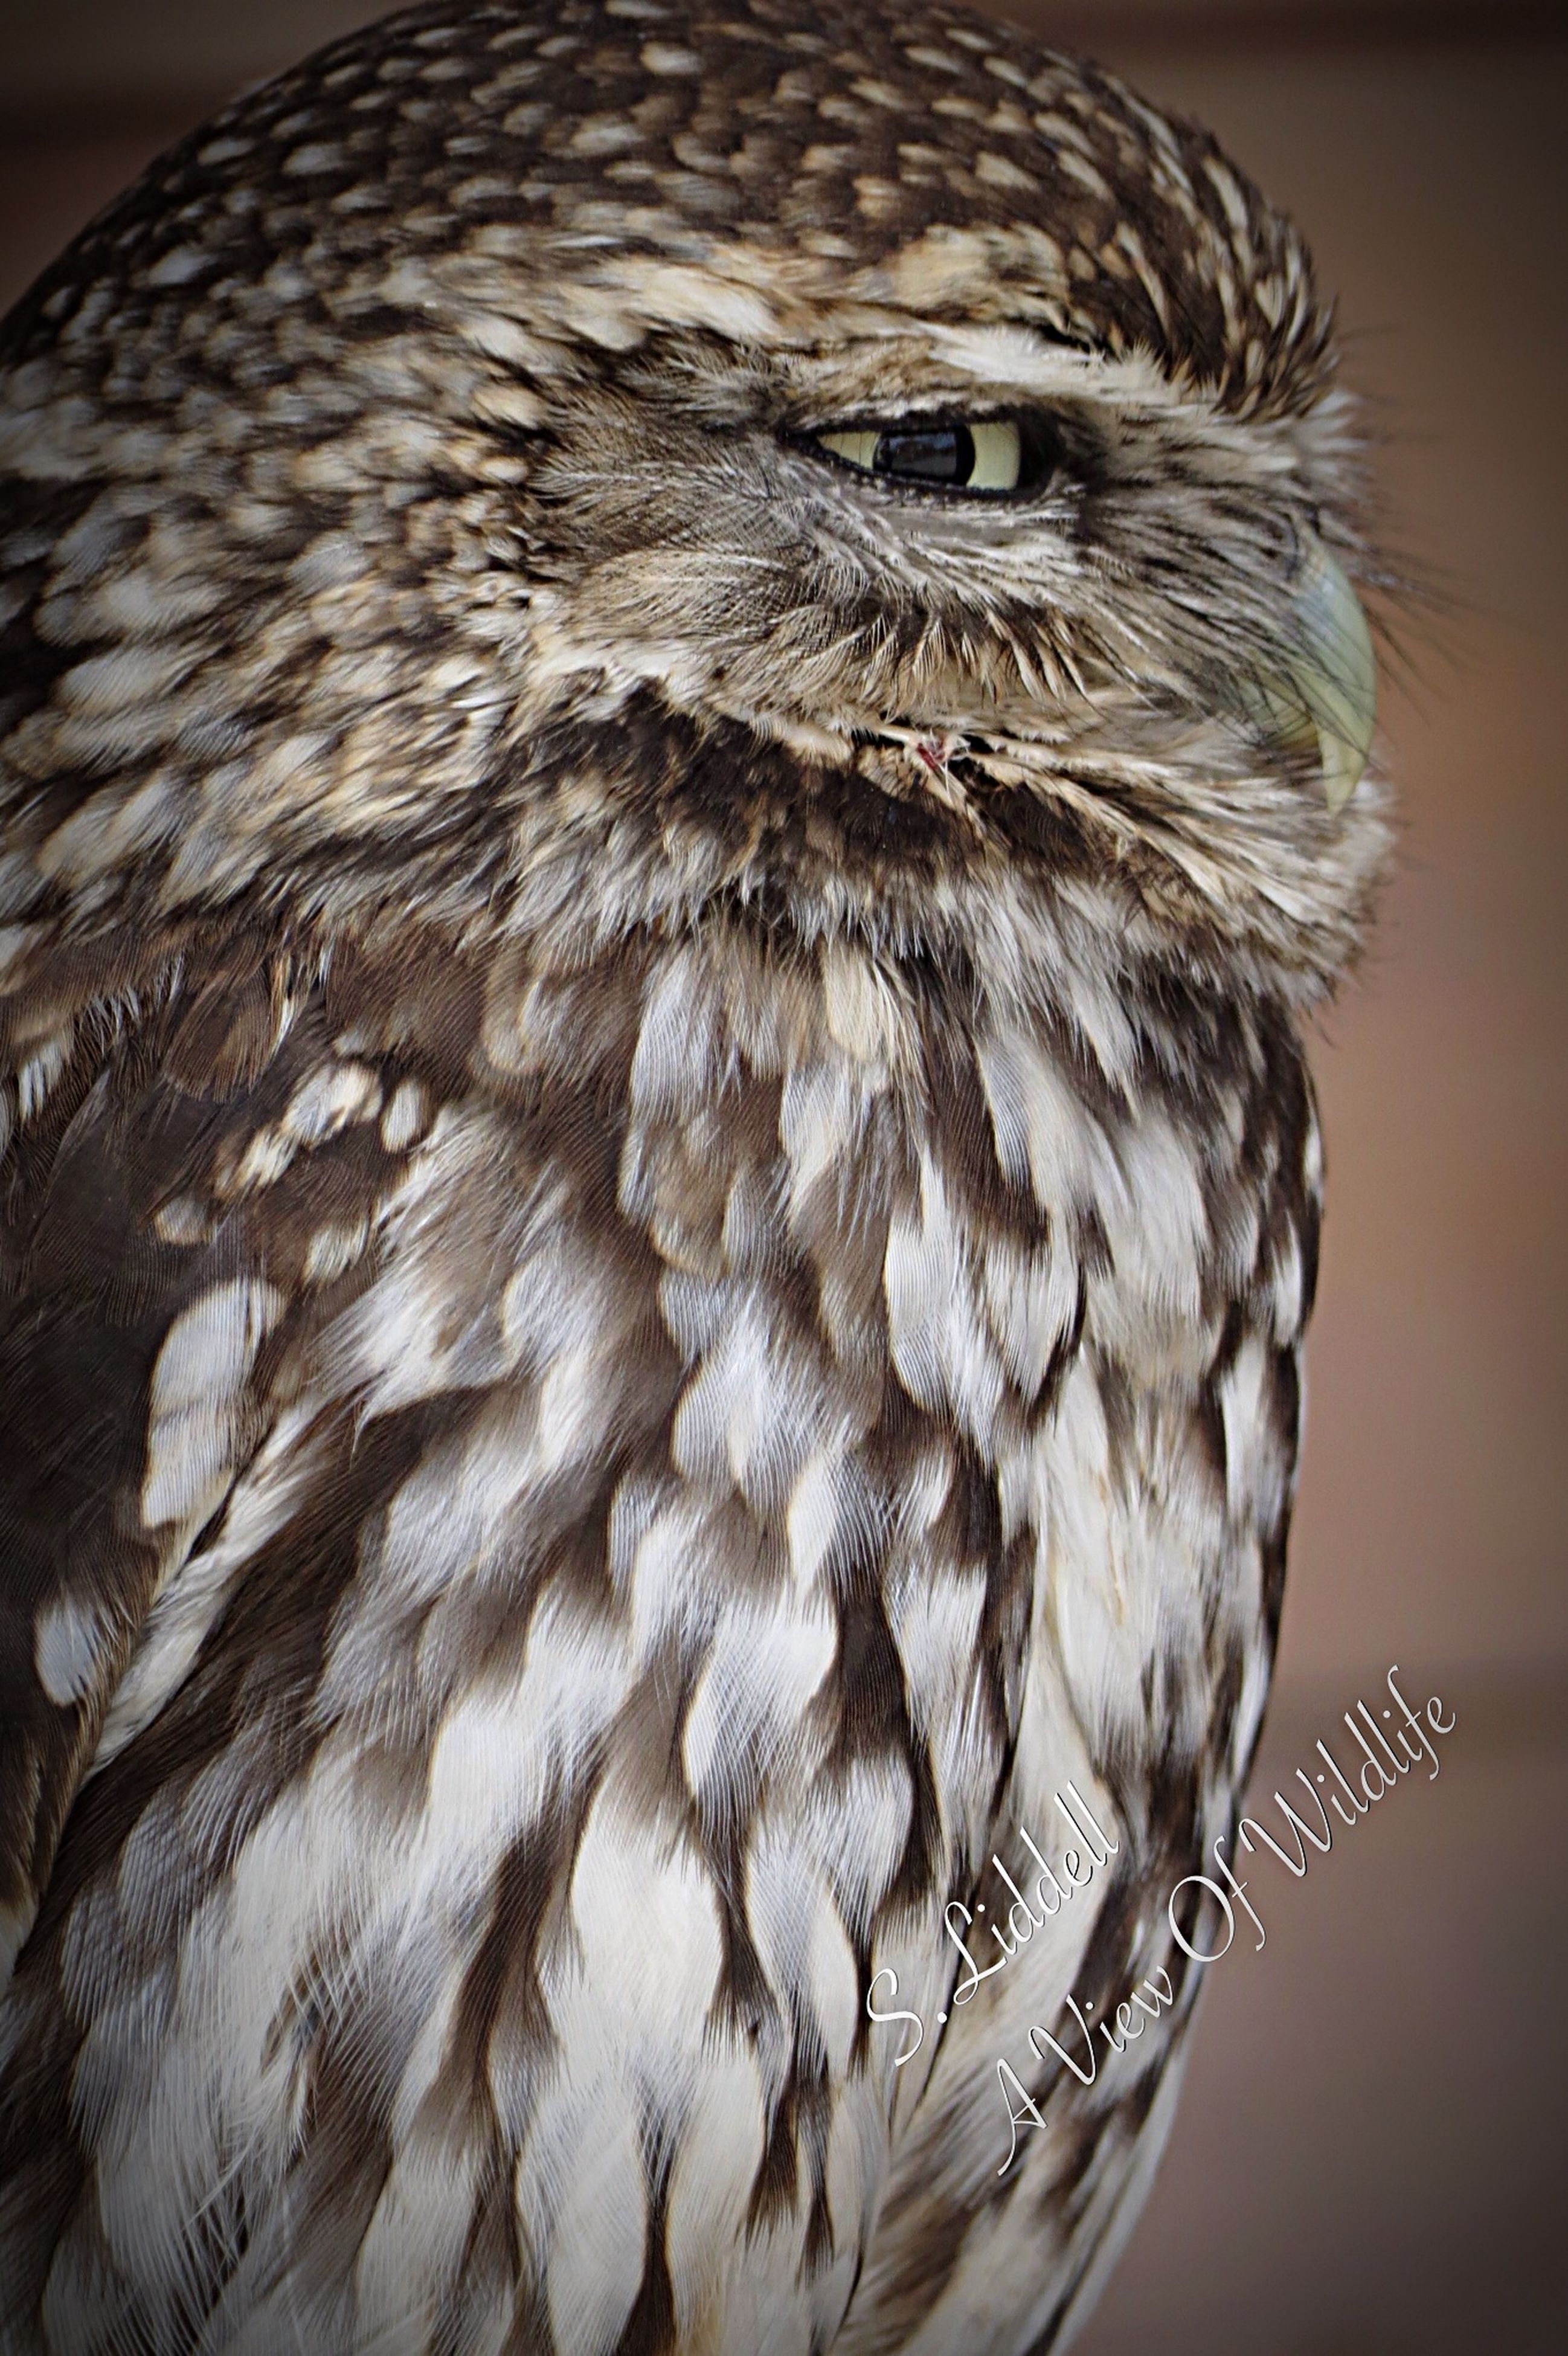 bird, animal themes, one animal, close-up, animals in the wild, wildlife, feather, focus on foreground, bird of prey, studio shot, beak, owl, animal head, indoors, no people, animal body part, front view, day, nature, perching